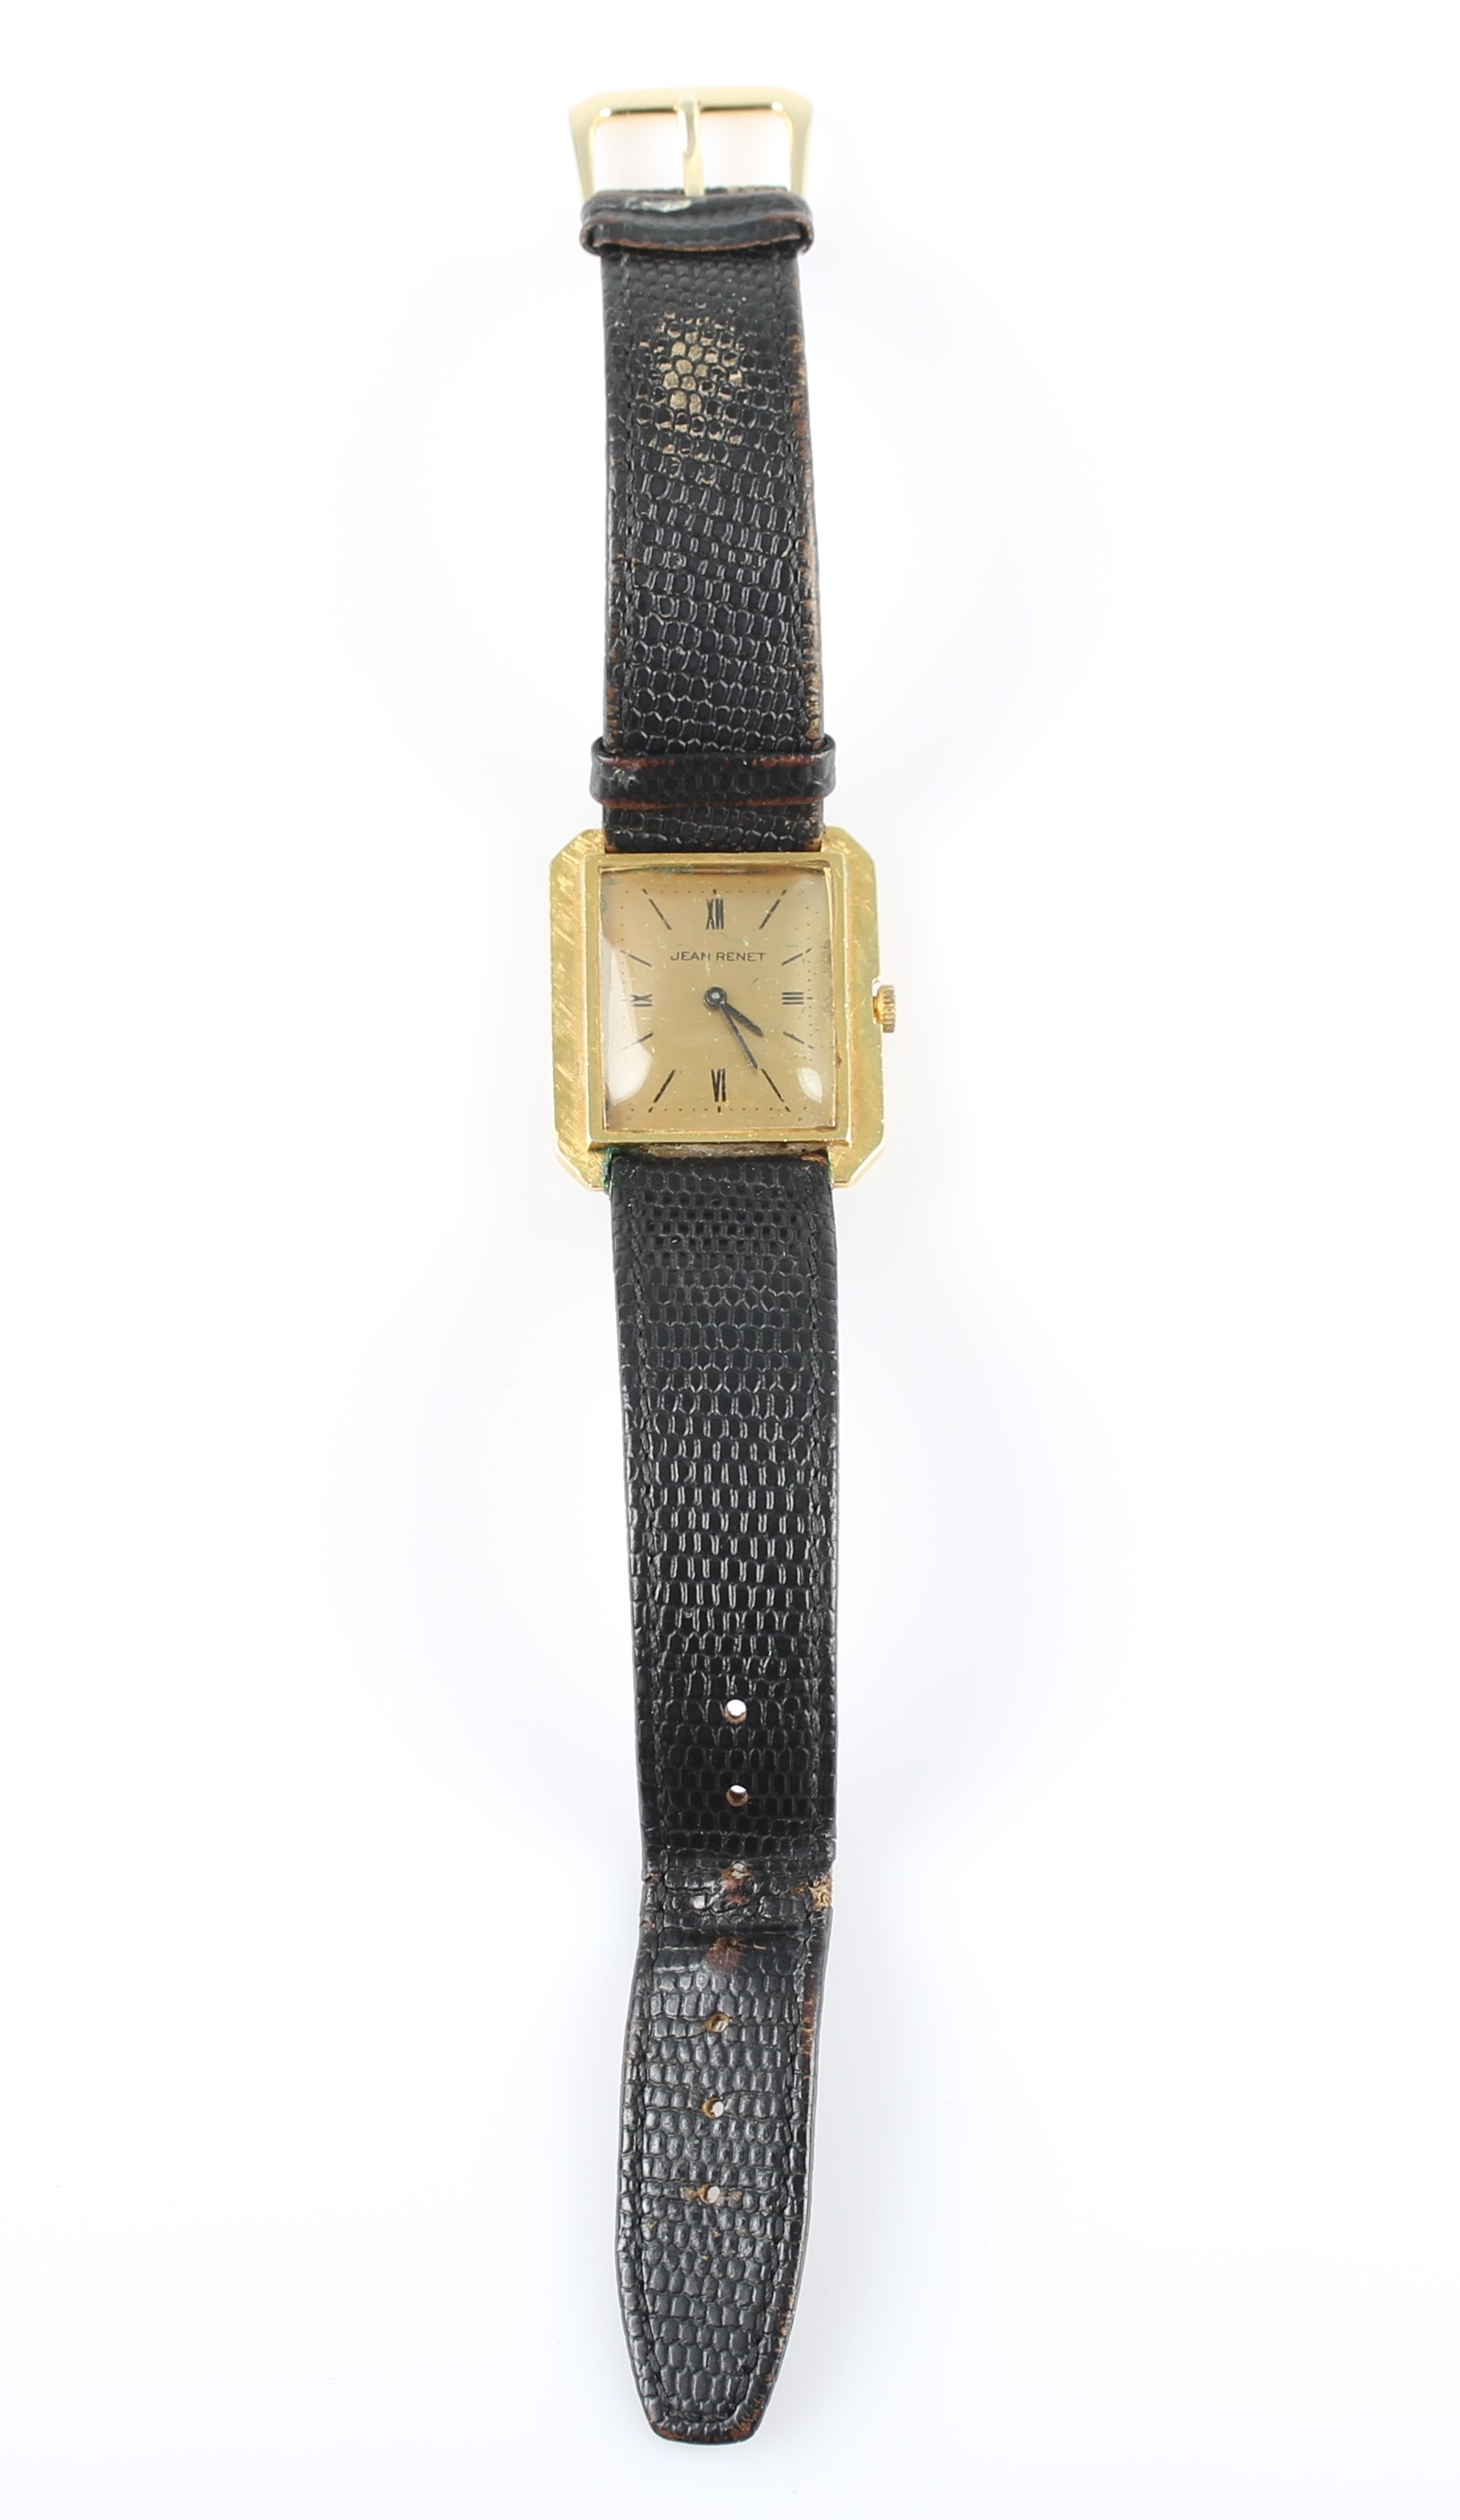 Lot 27 - An 18ct yellow gold Jean Renet wrist watch, the gold-tone dial having hourly baton and quarterly